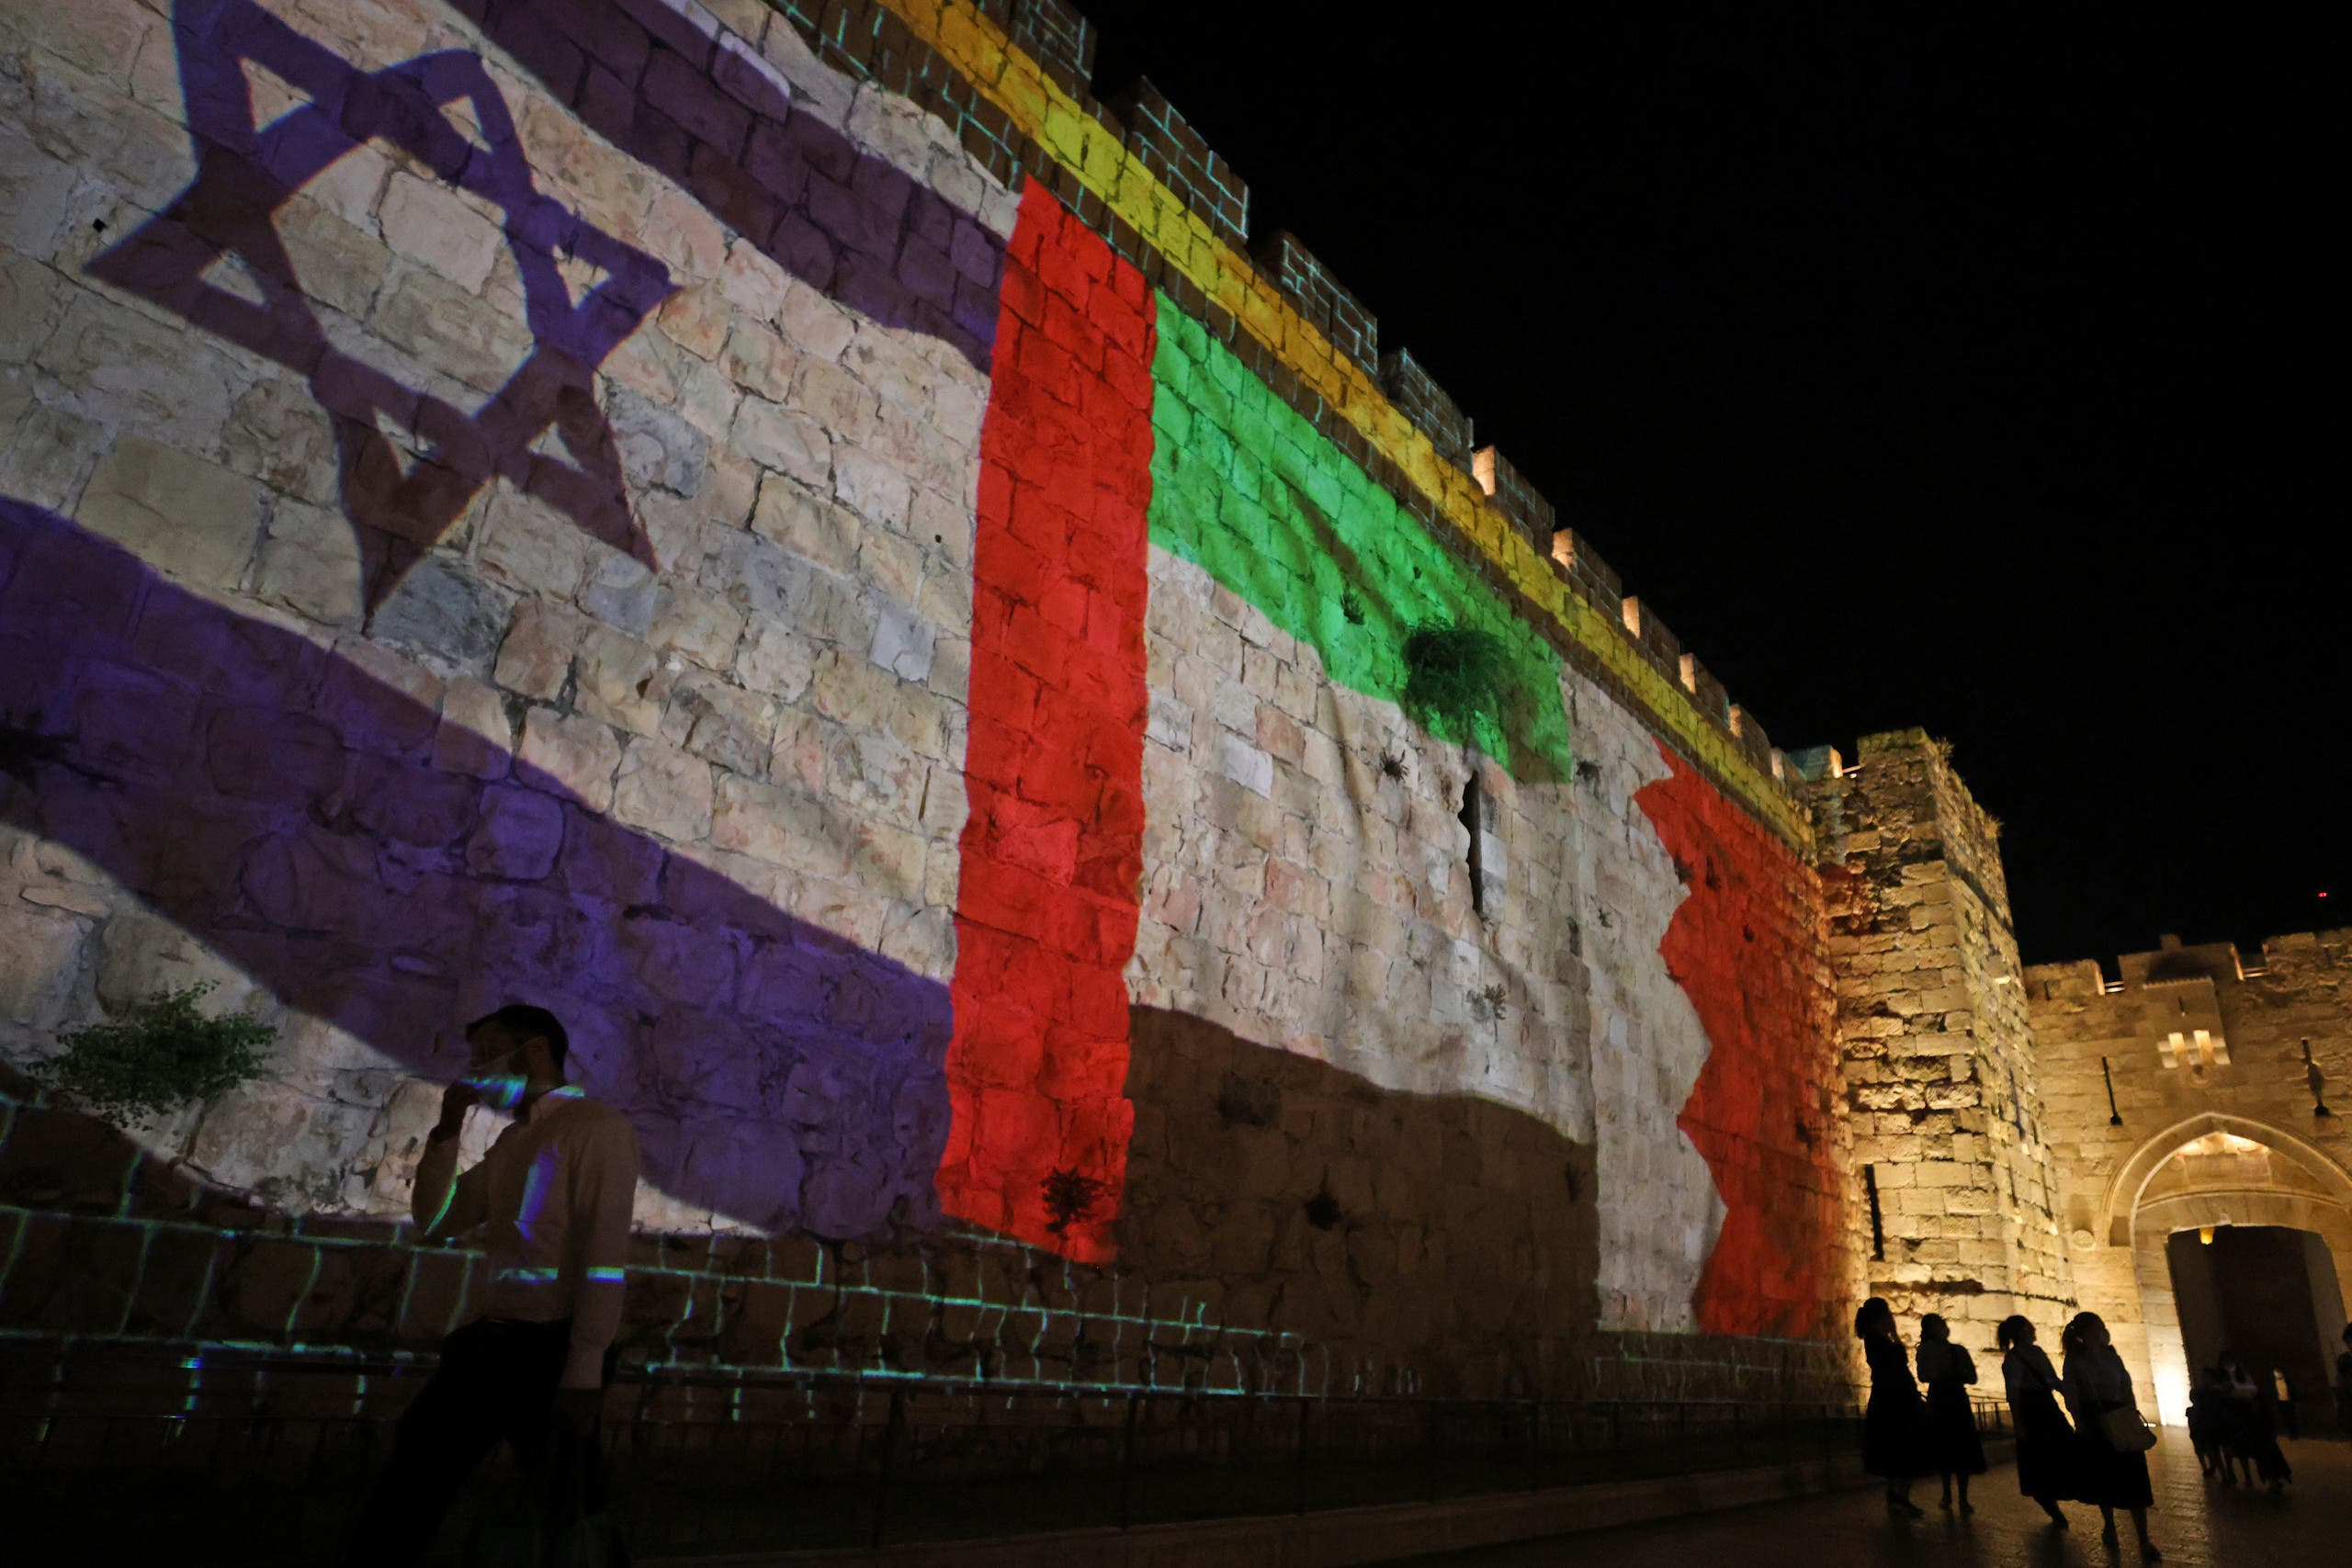 The flags of Israel, United Arab Emirates, and Bahrain are projected on the ramparts of Jerusalem's Old City on September 15, 2020. (AFP)